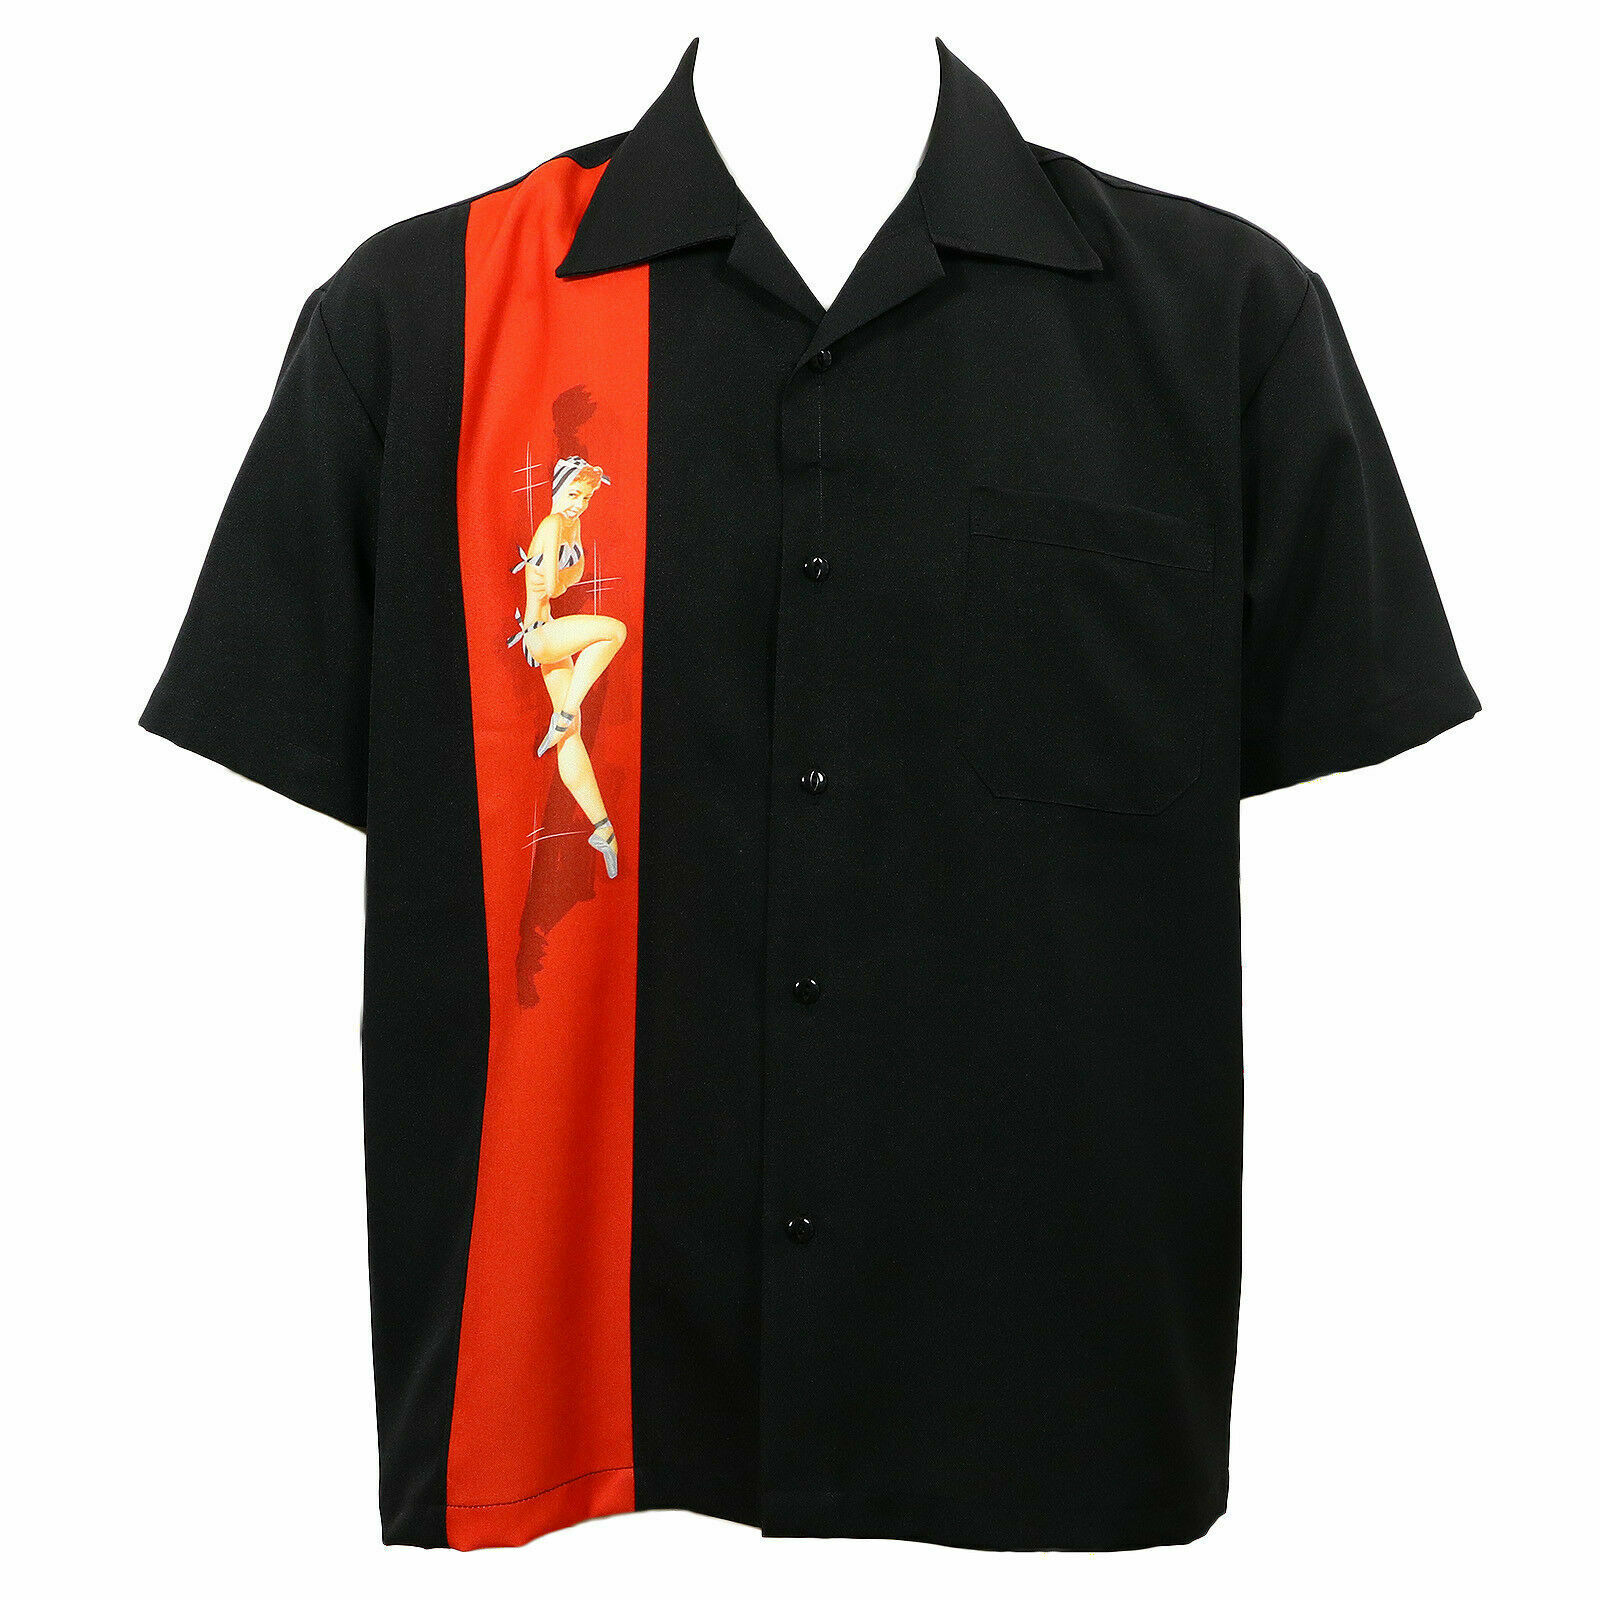 Steady Clothing Singolo Pinup Rockabilly Nero con Bottoni Bowling Camicia